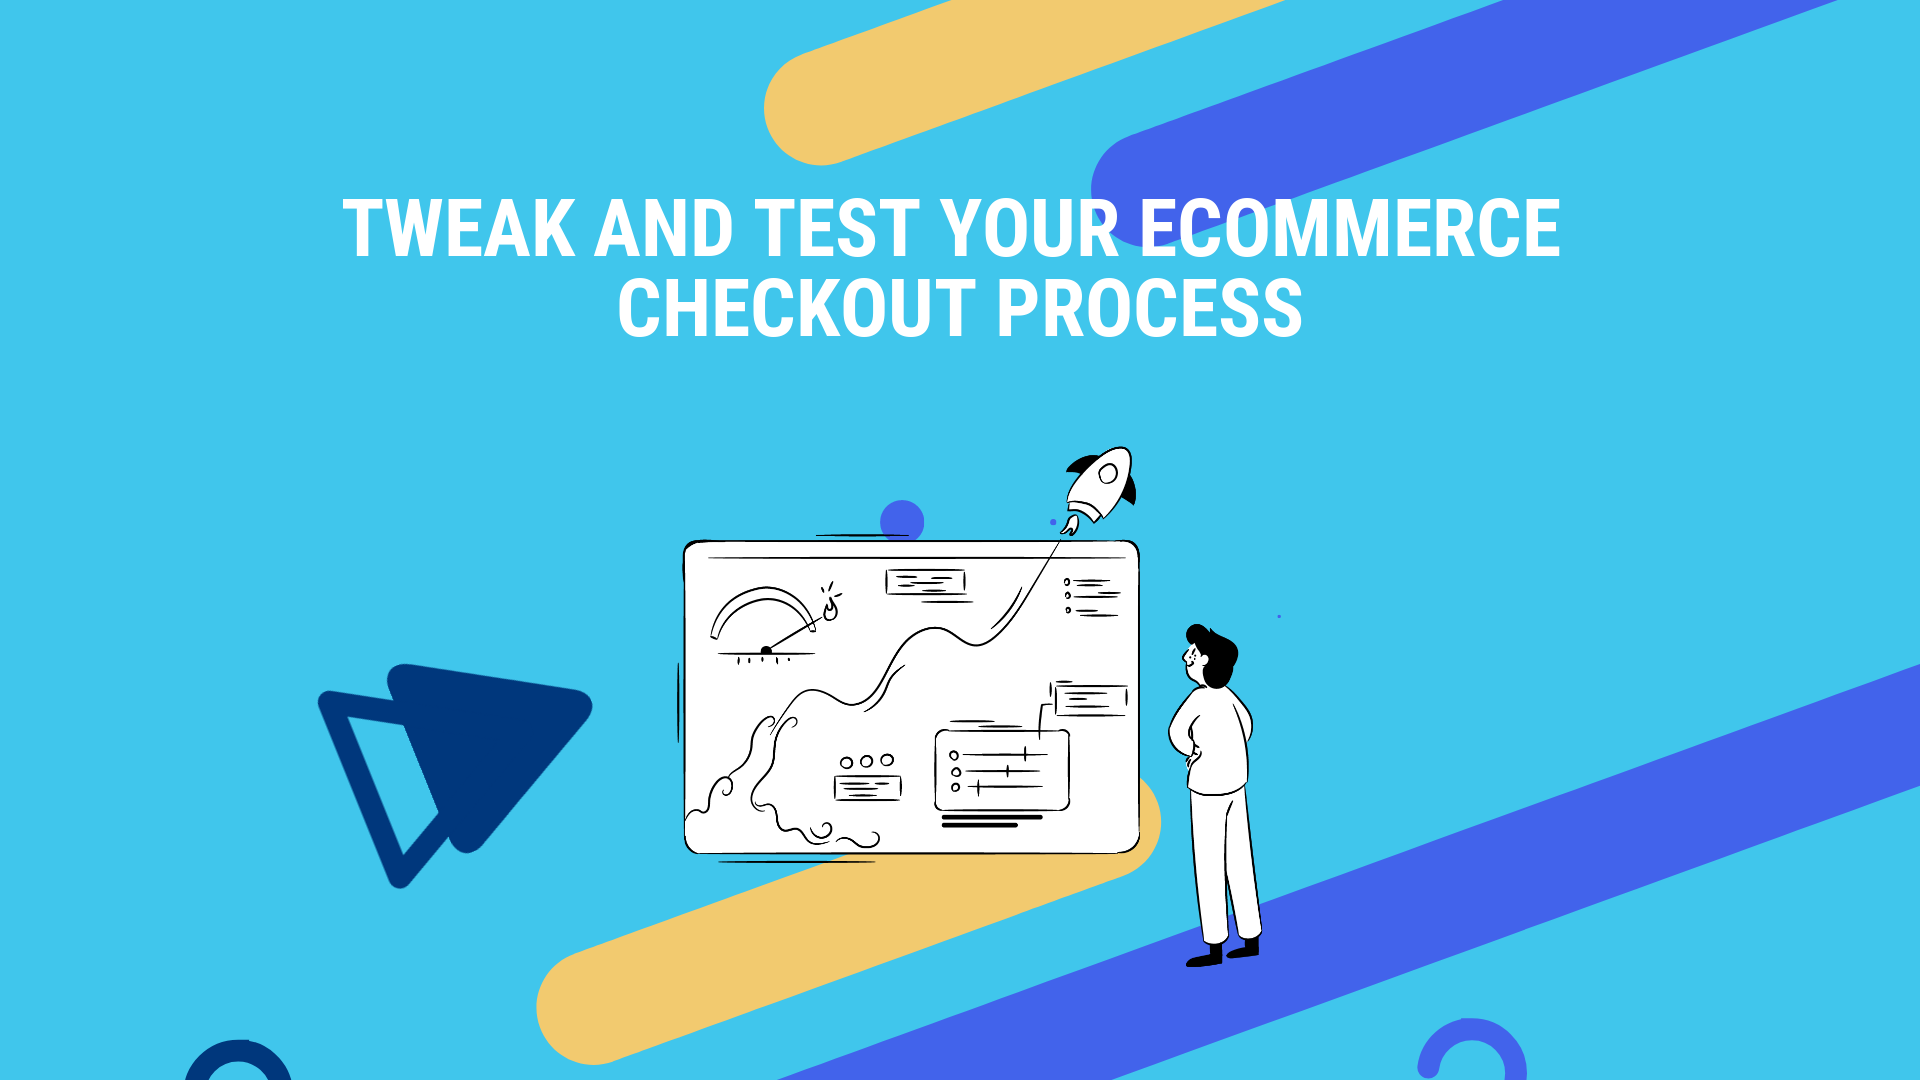 Tweak and Test Your eCommerce Checkout Process